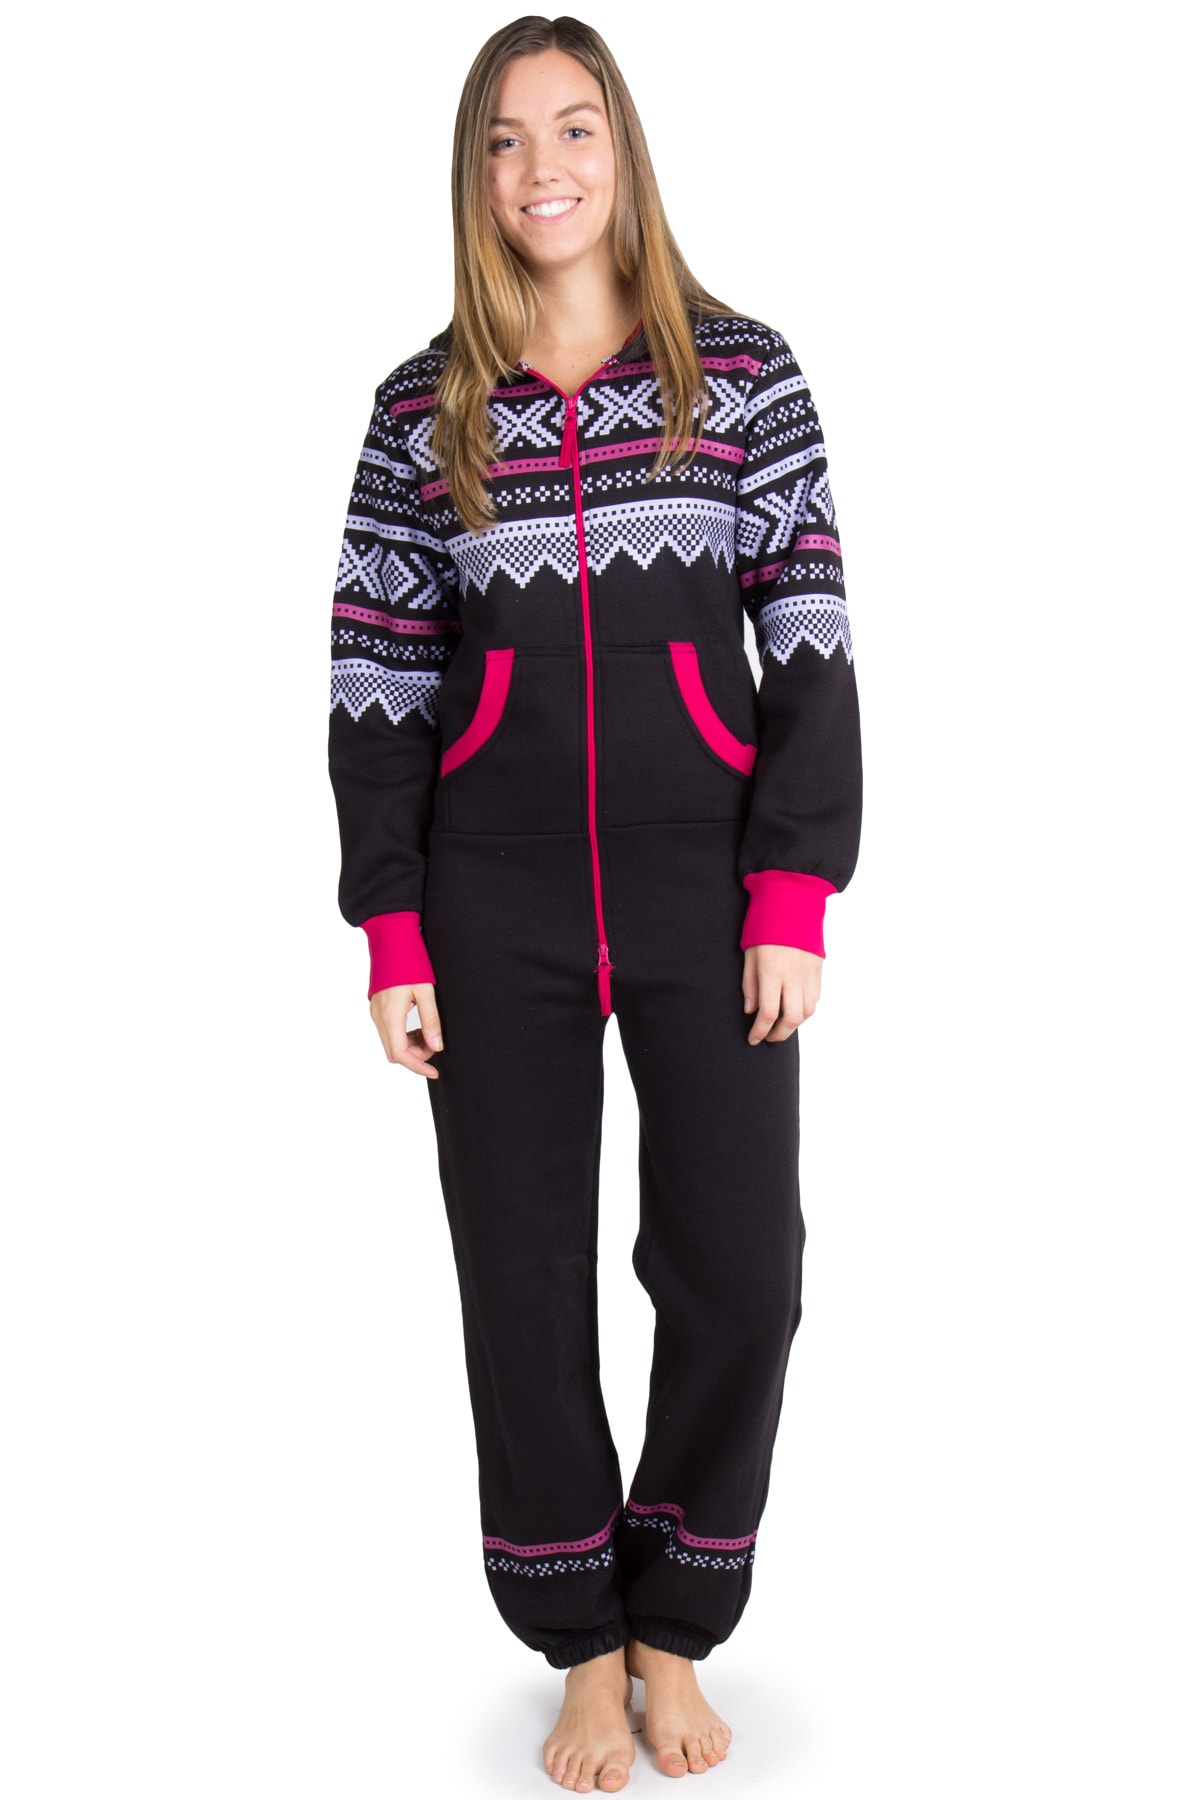 black fair isle onesie pajamas